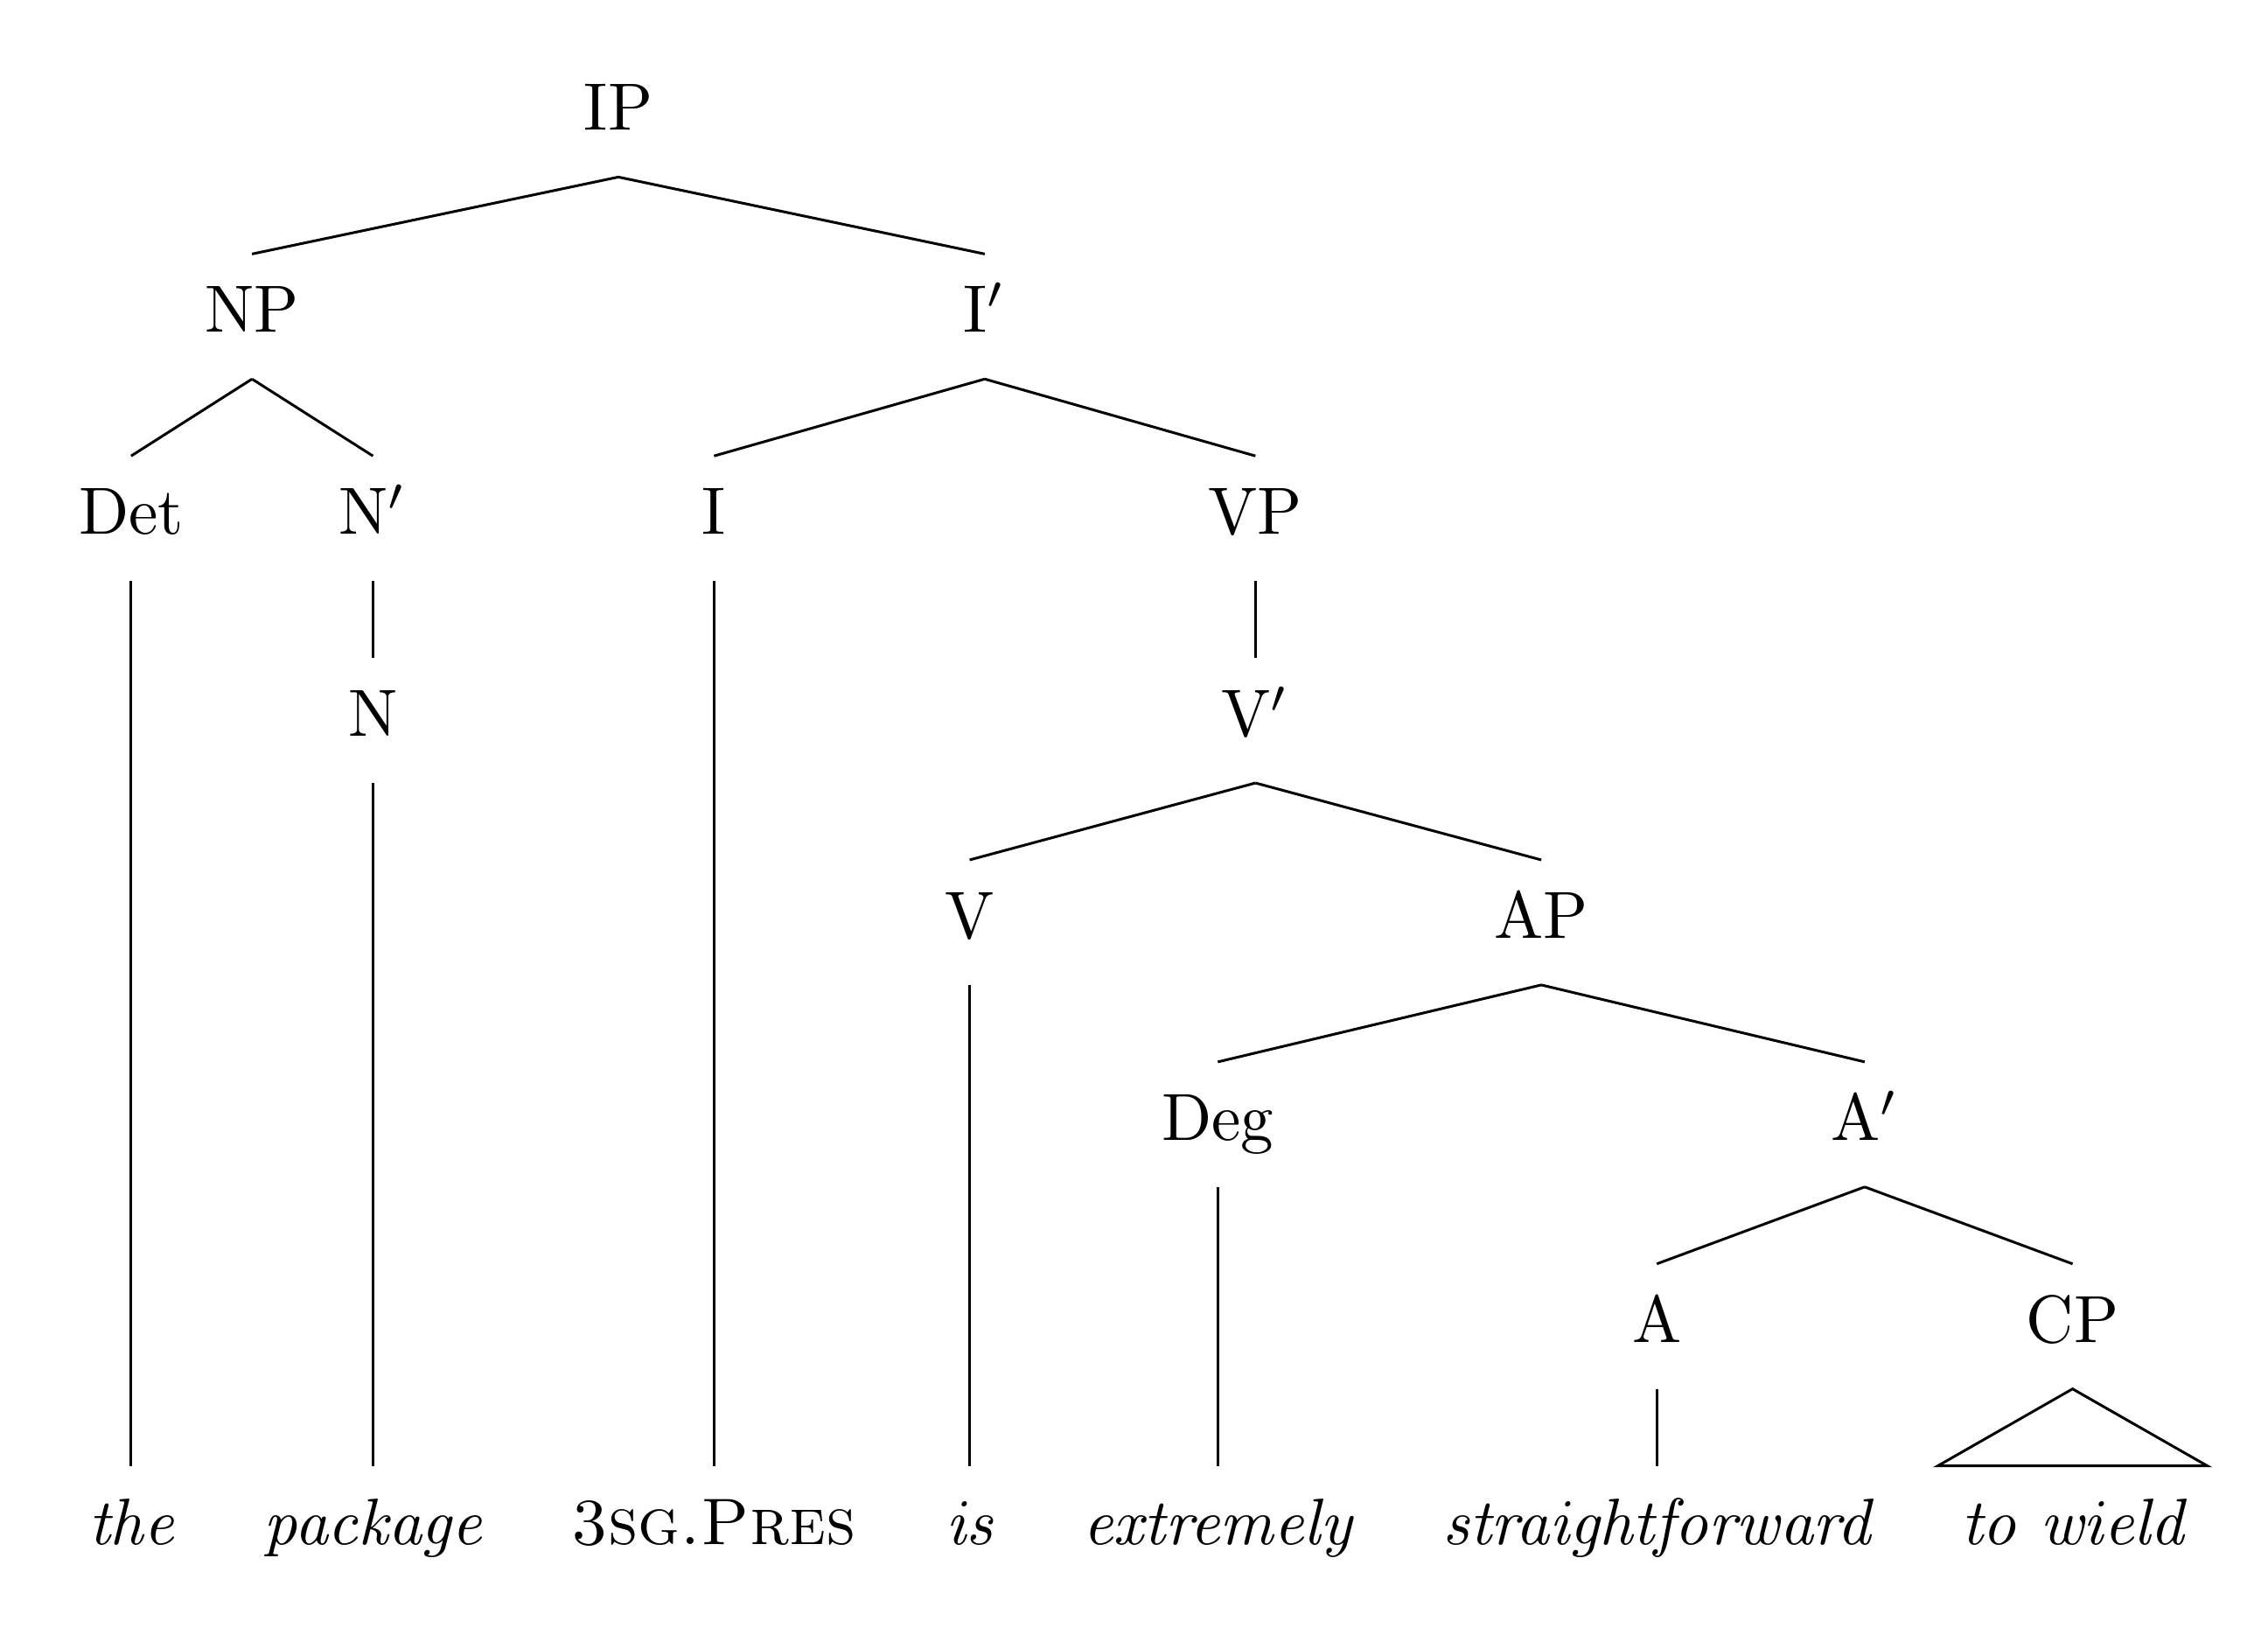 how to make a tree diagram wiring trailer plug 7 pin diagrams can i draw simple trees in latex tex